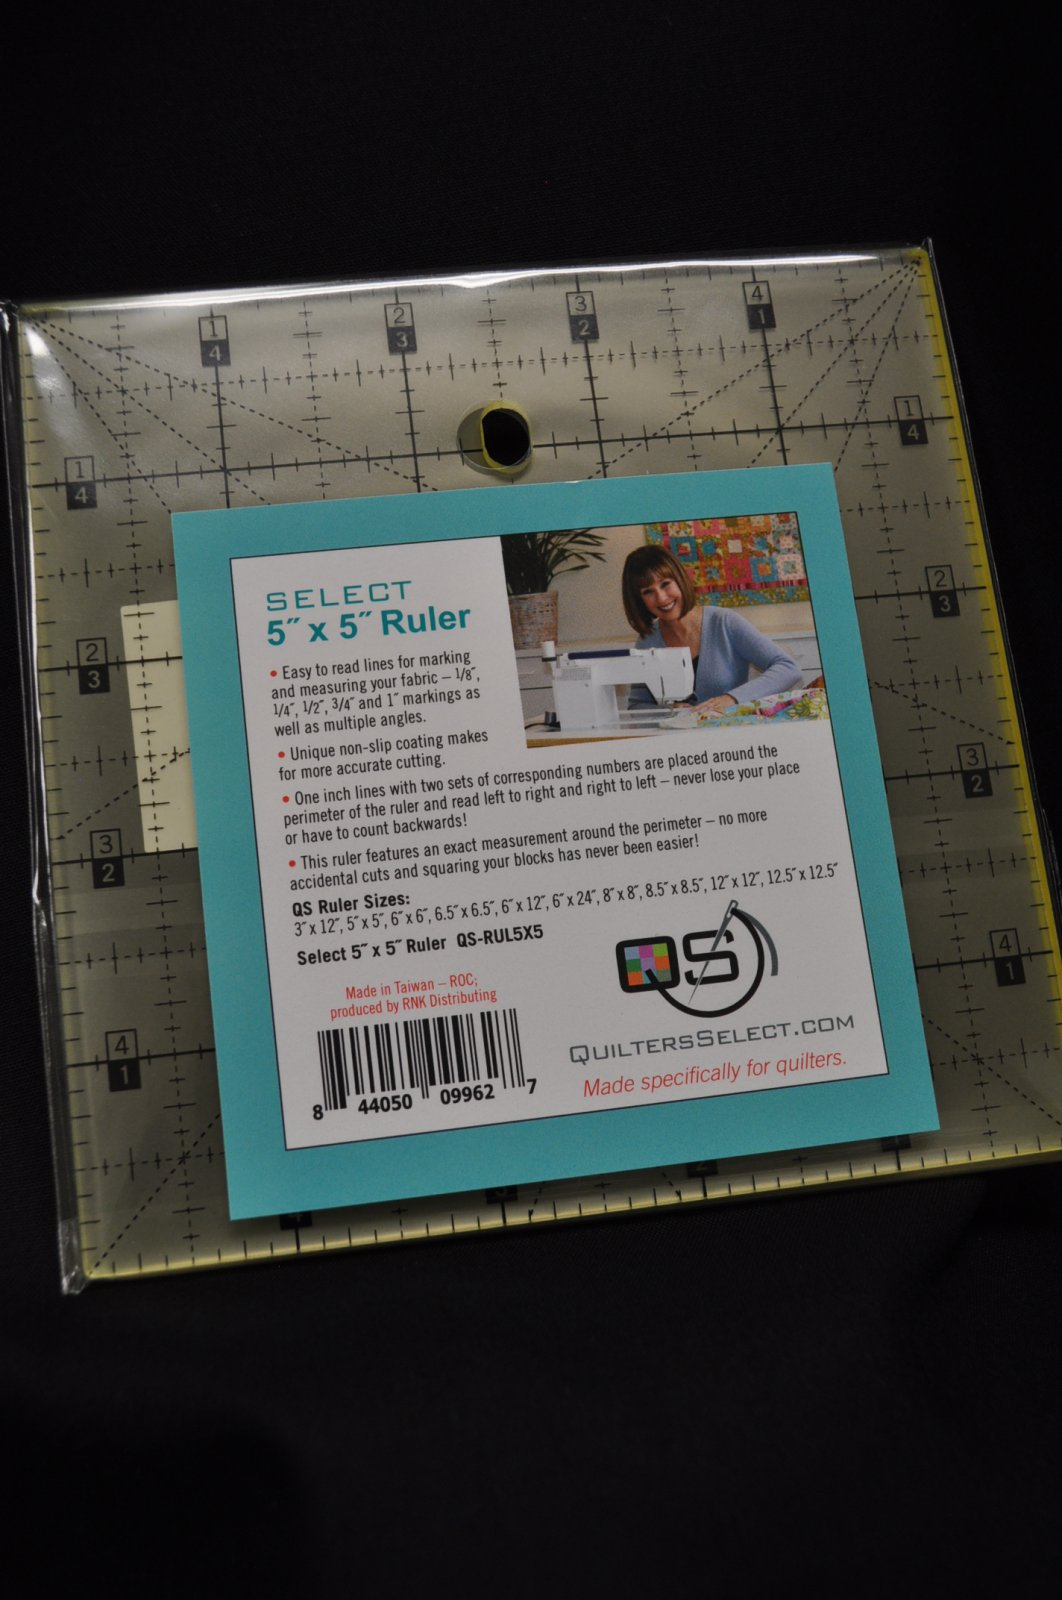 Quilters Select Quilting Ruler 5 x 5